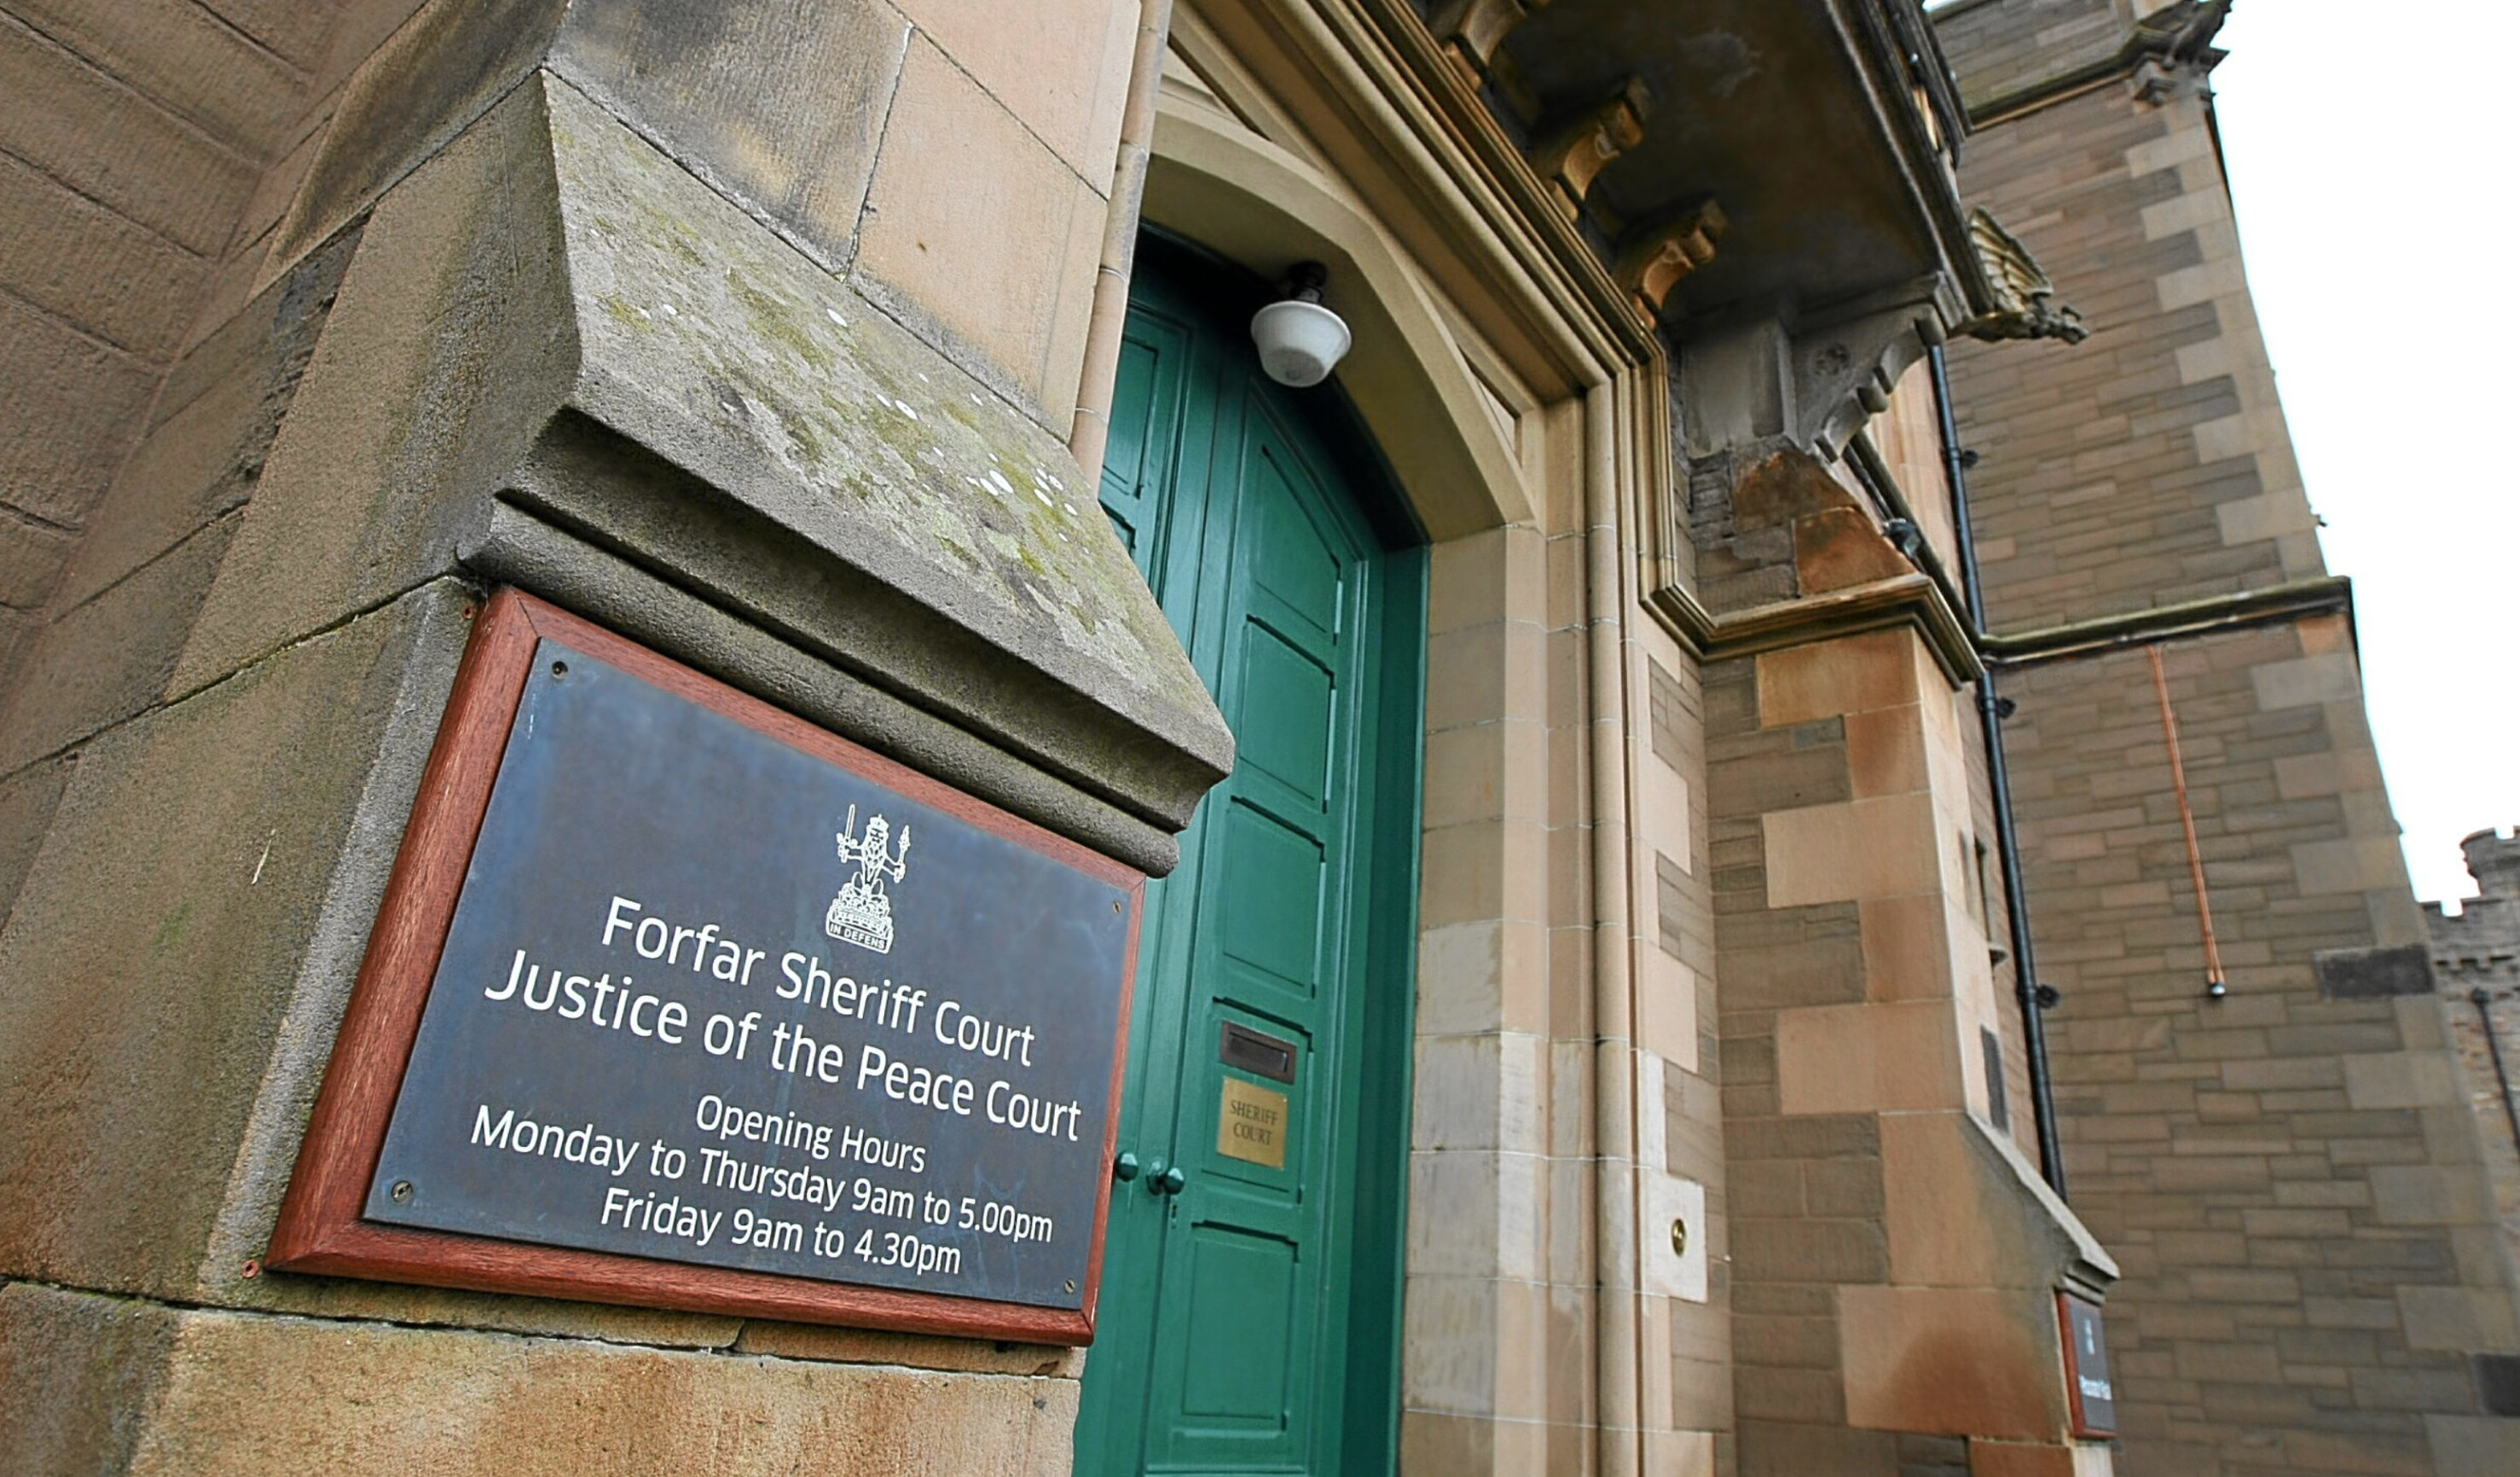 Munro appeared at Forfar Sheriff Court.